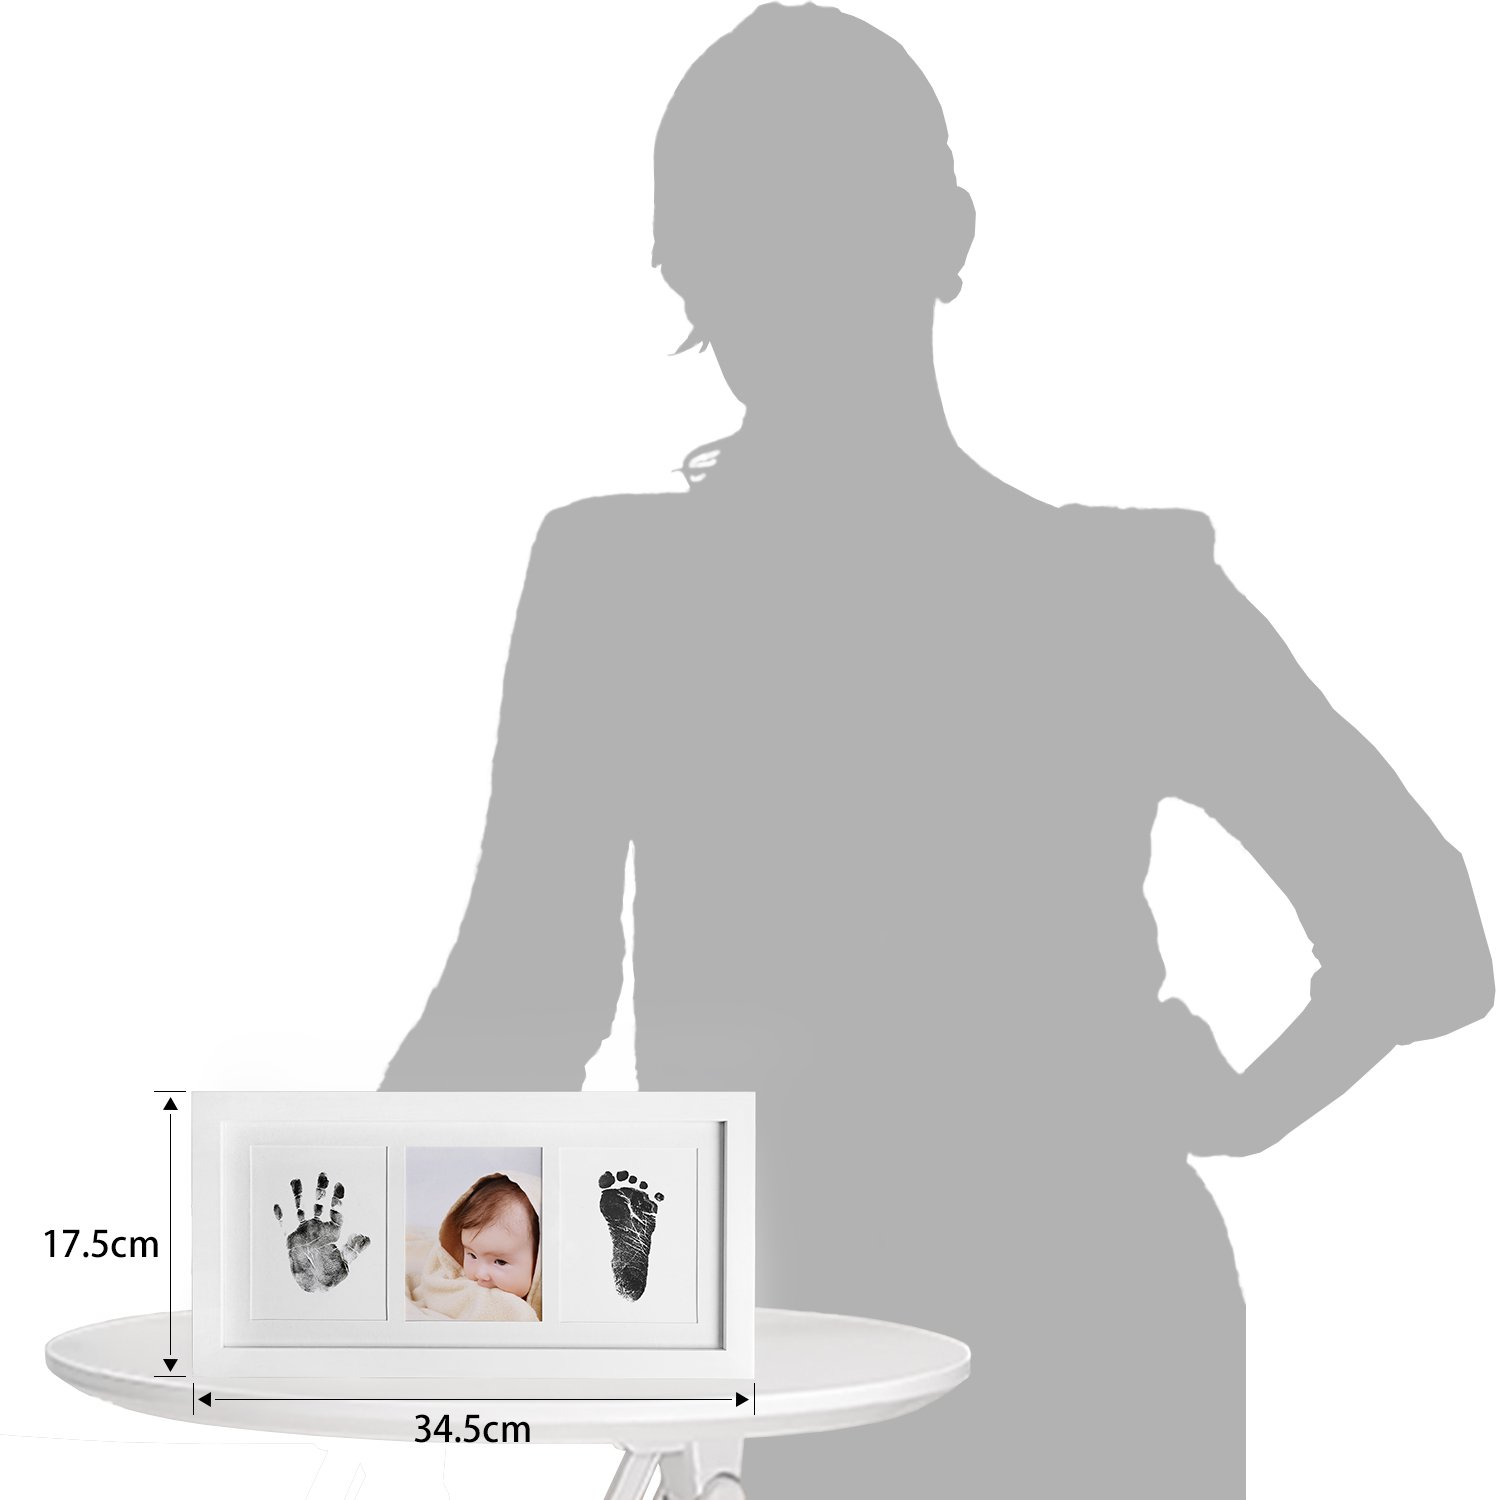 Upala Baby Handprint Footprint Photo Frame Kit Newborn Boys Girls, Babyprints Paper Clean Touch Ink Pad to Create Baby's Prints, Amazing by Upala (Image #7)